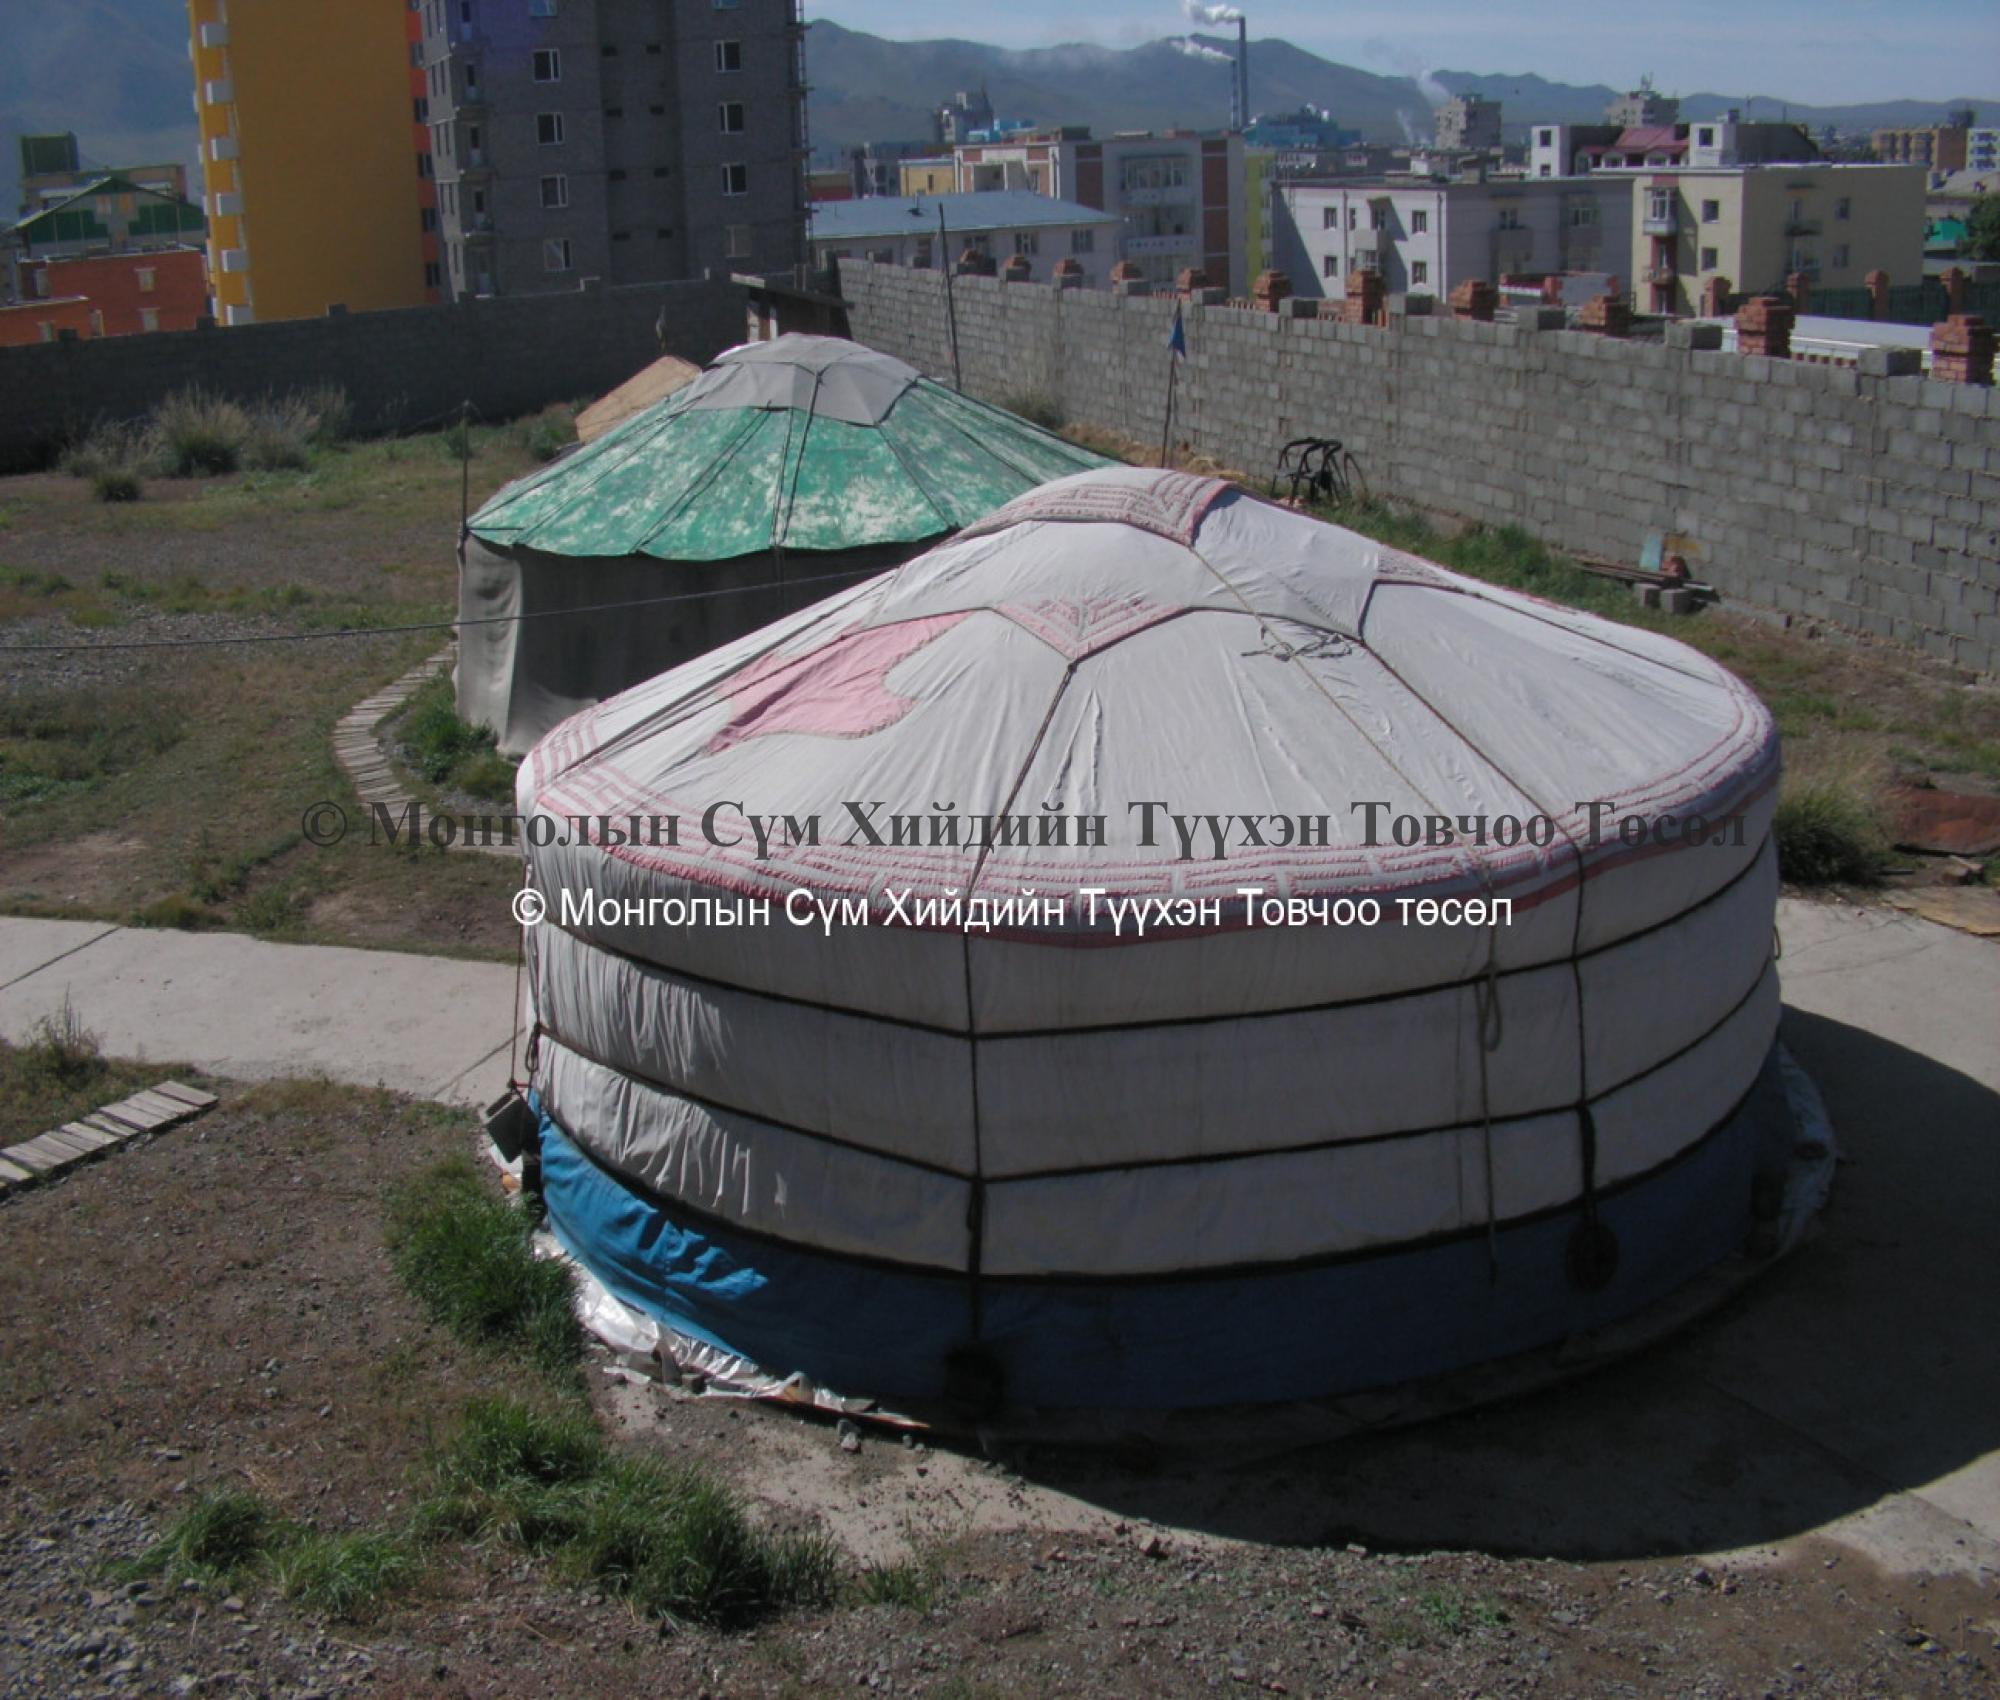 Yurts in front of the temple building